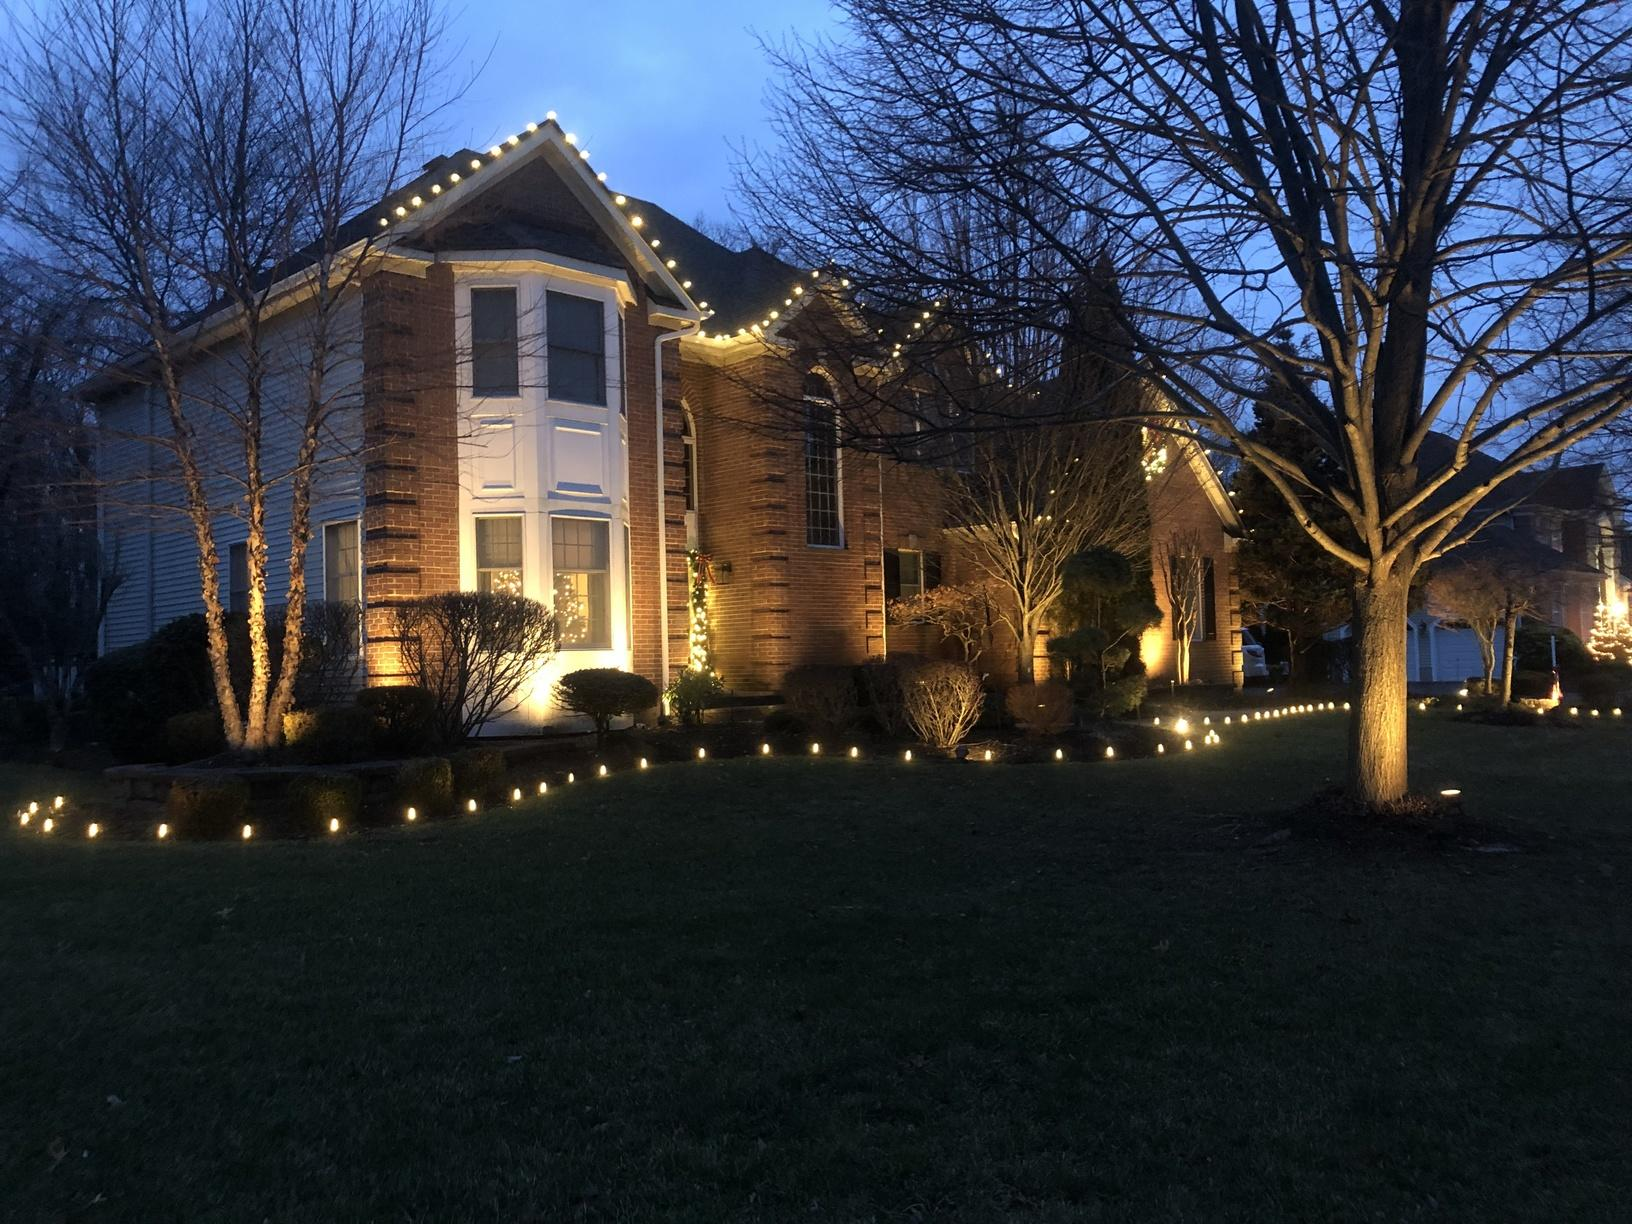 Christmas Lights Display In Manasquan